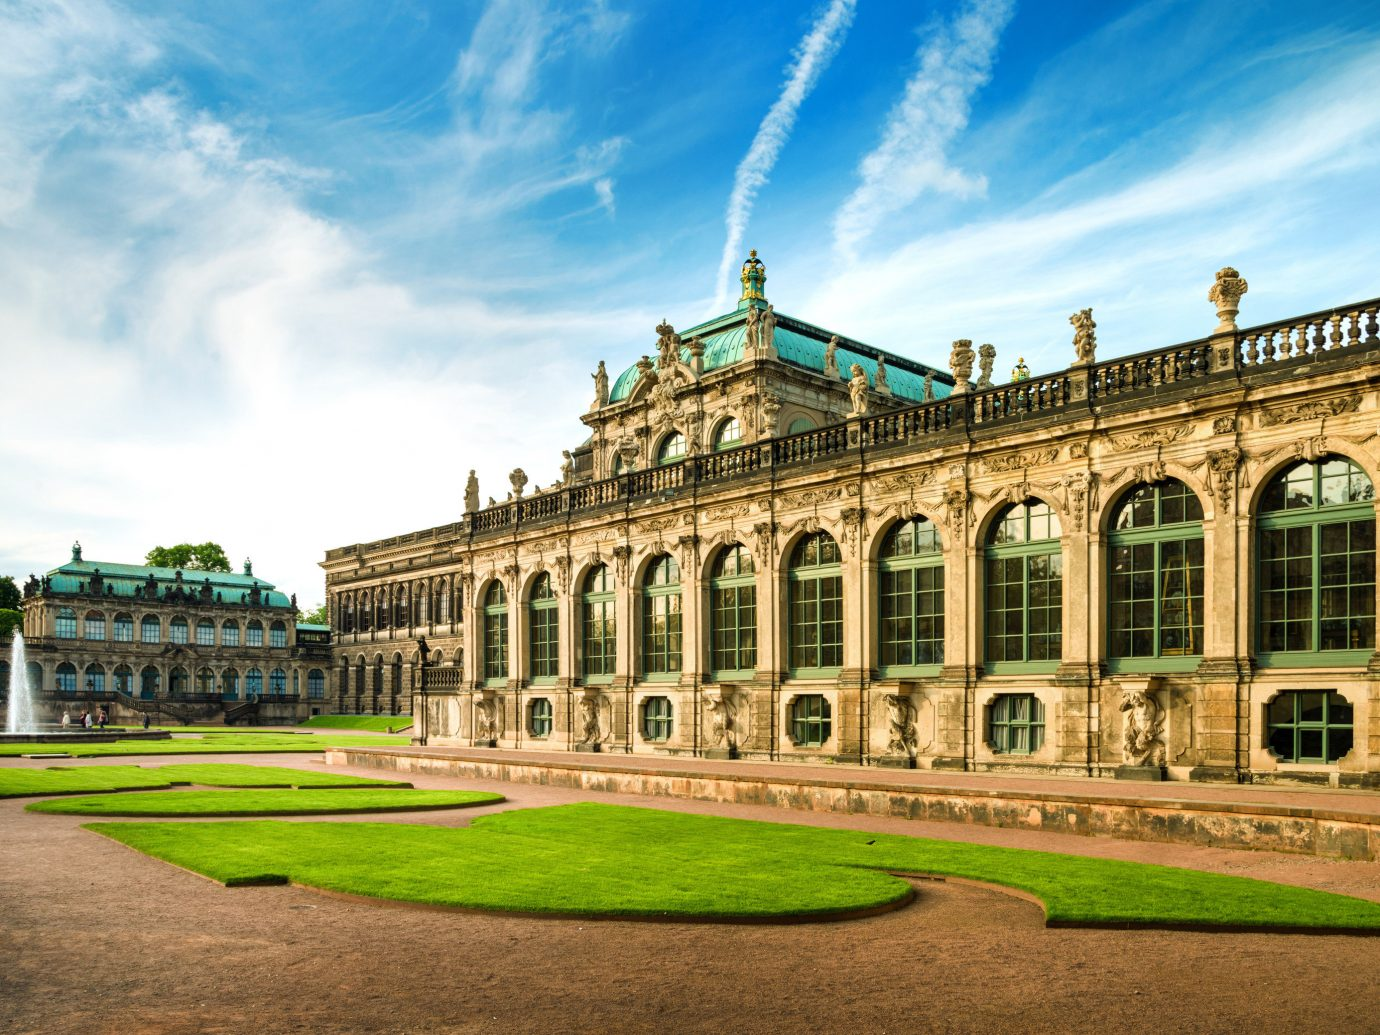 Berlin europe Germany Hamburg Munich Trip Ideas sky landmark stately home palace estate grass daytime classical architecture national trust for places of historic interest or natural beauty building tourist attraction château historic site mansion facade tree tourism university plaza landscape cloud